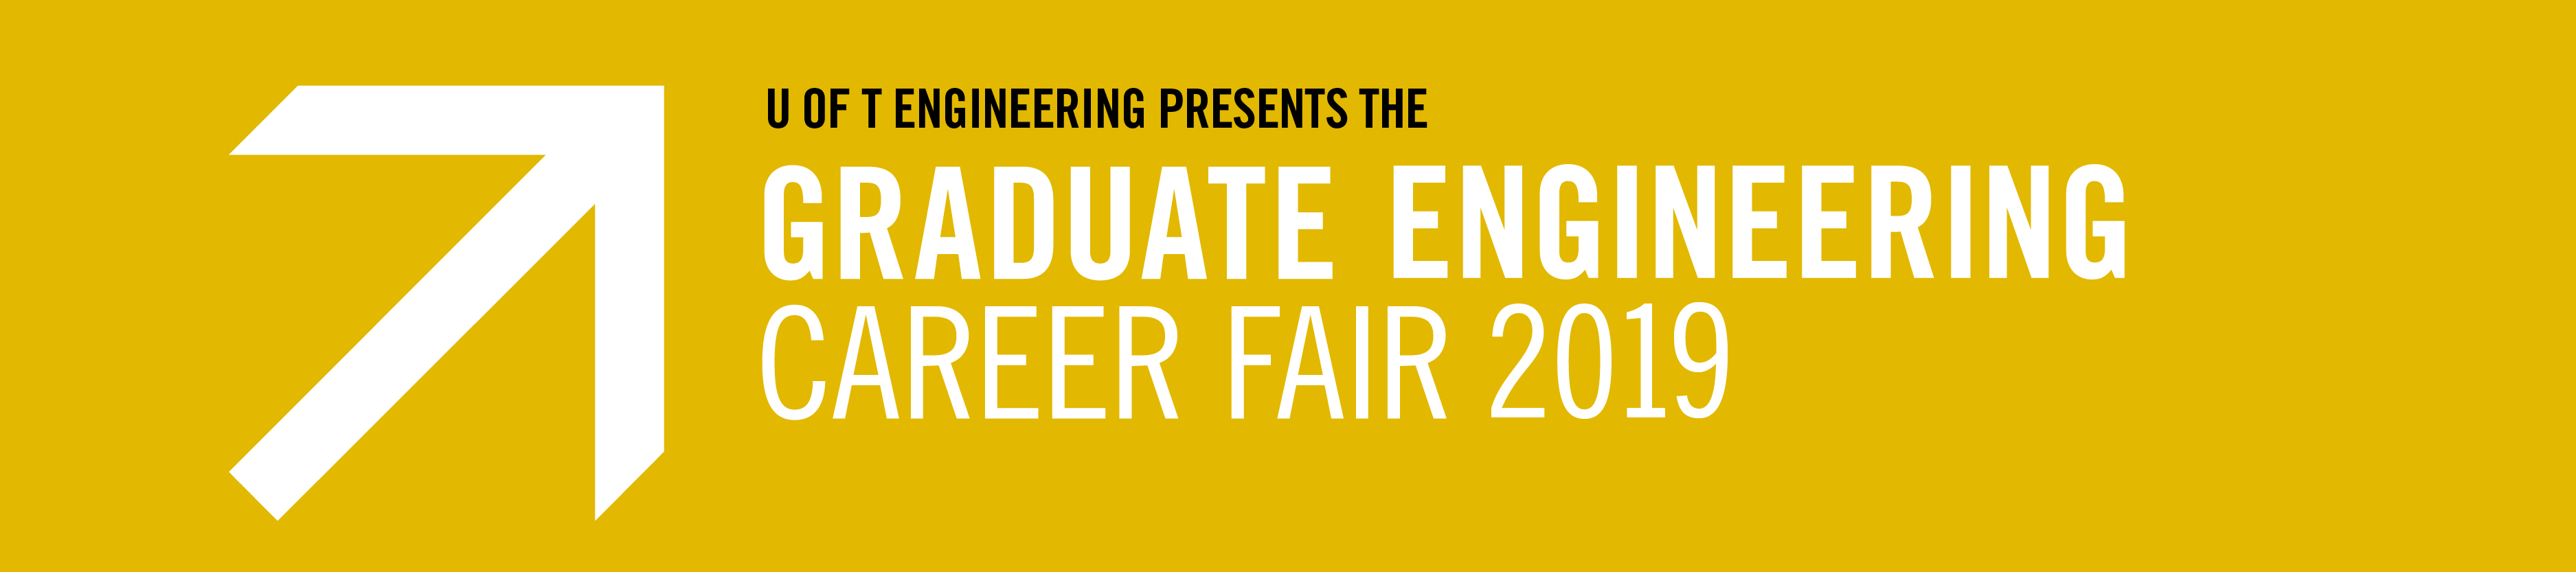 Graduate Engineering Career Fair 2019